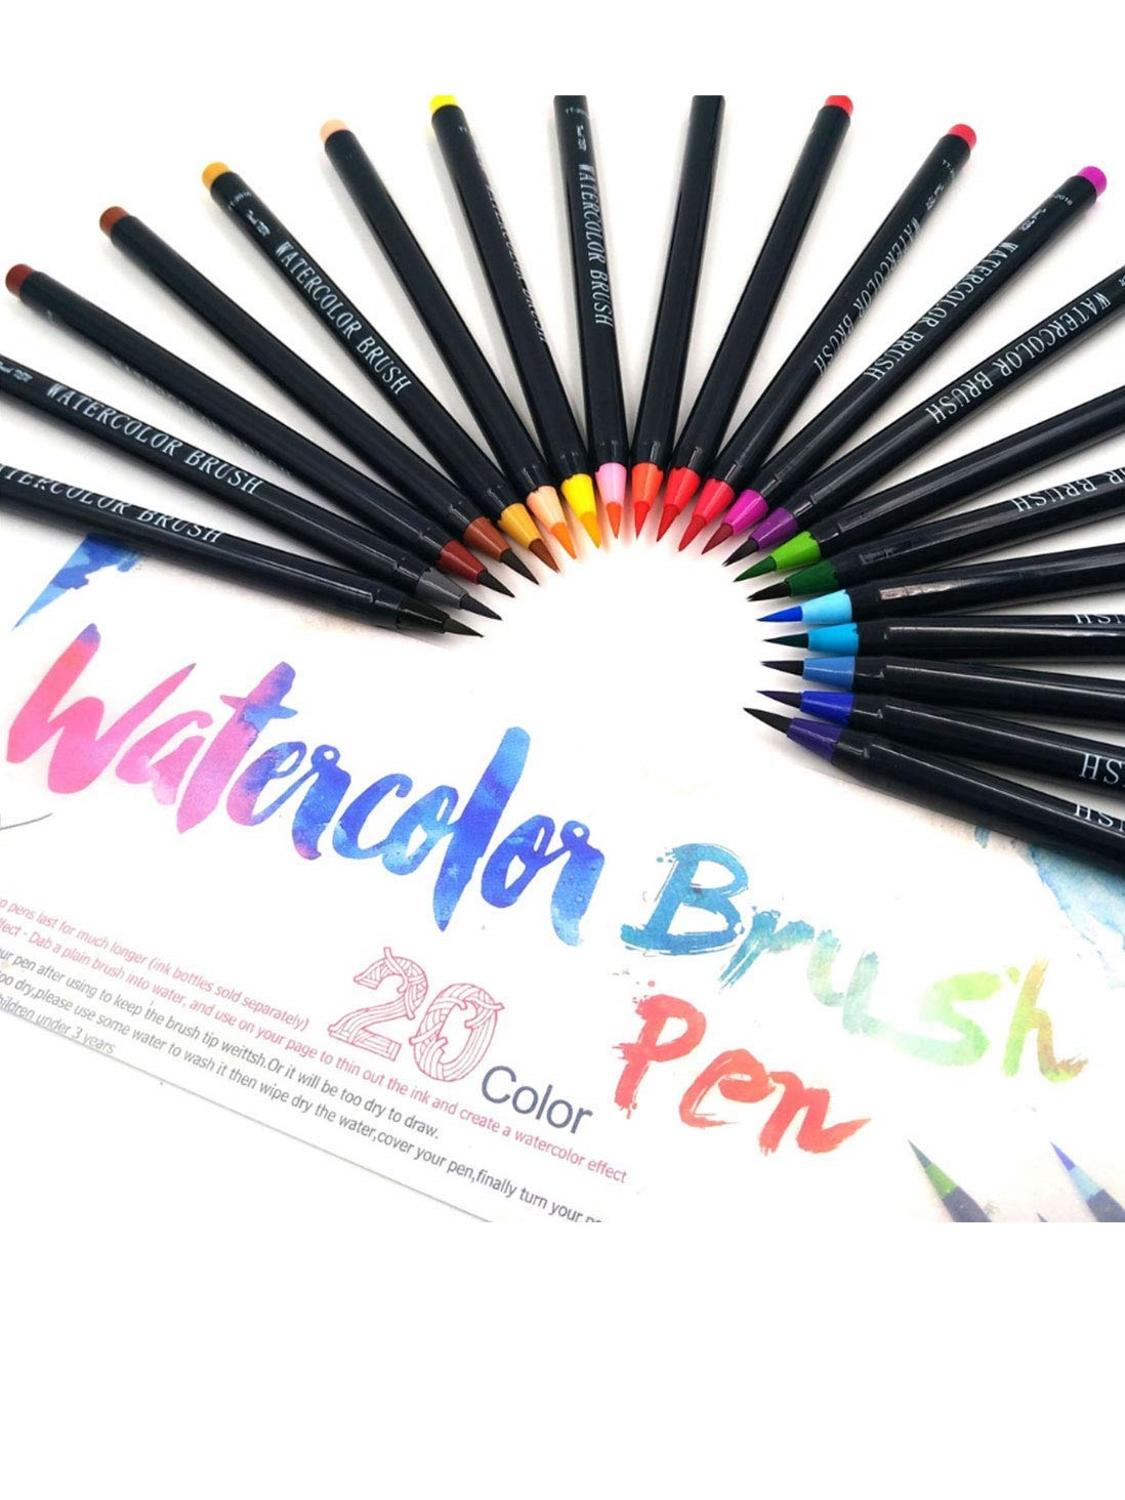 Pen-Set Paint-Brush Refillable Watercolor Calligraphy-Art Kids For Drawing with Gift